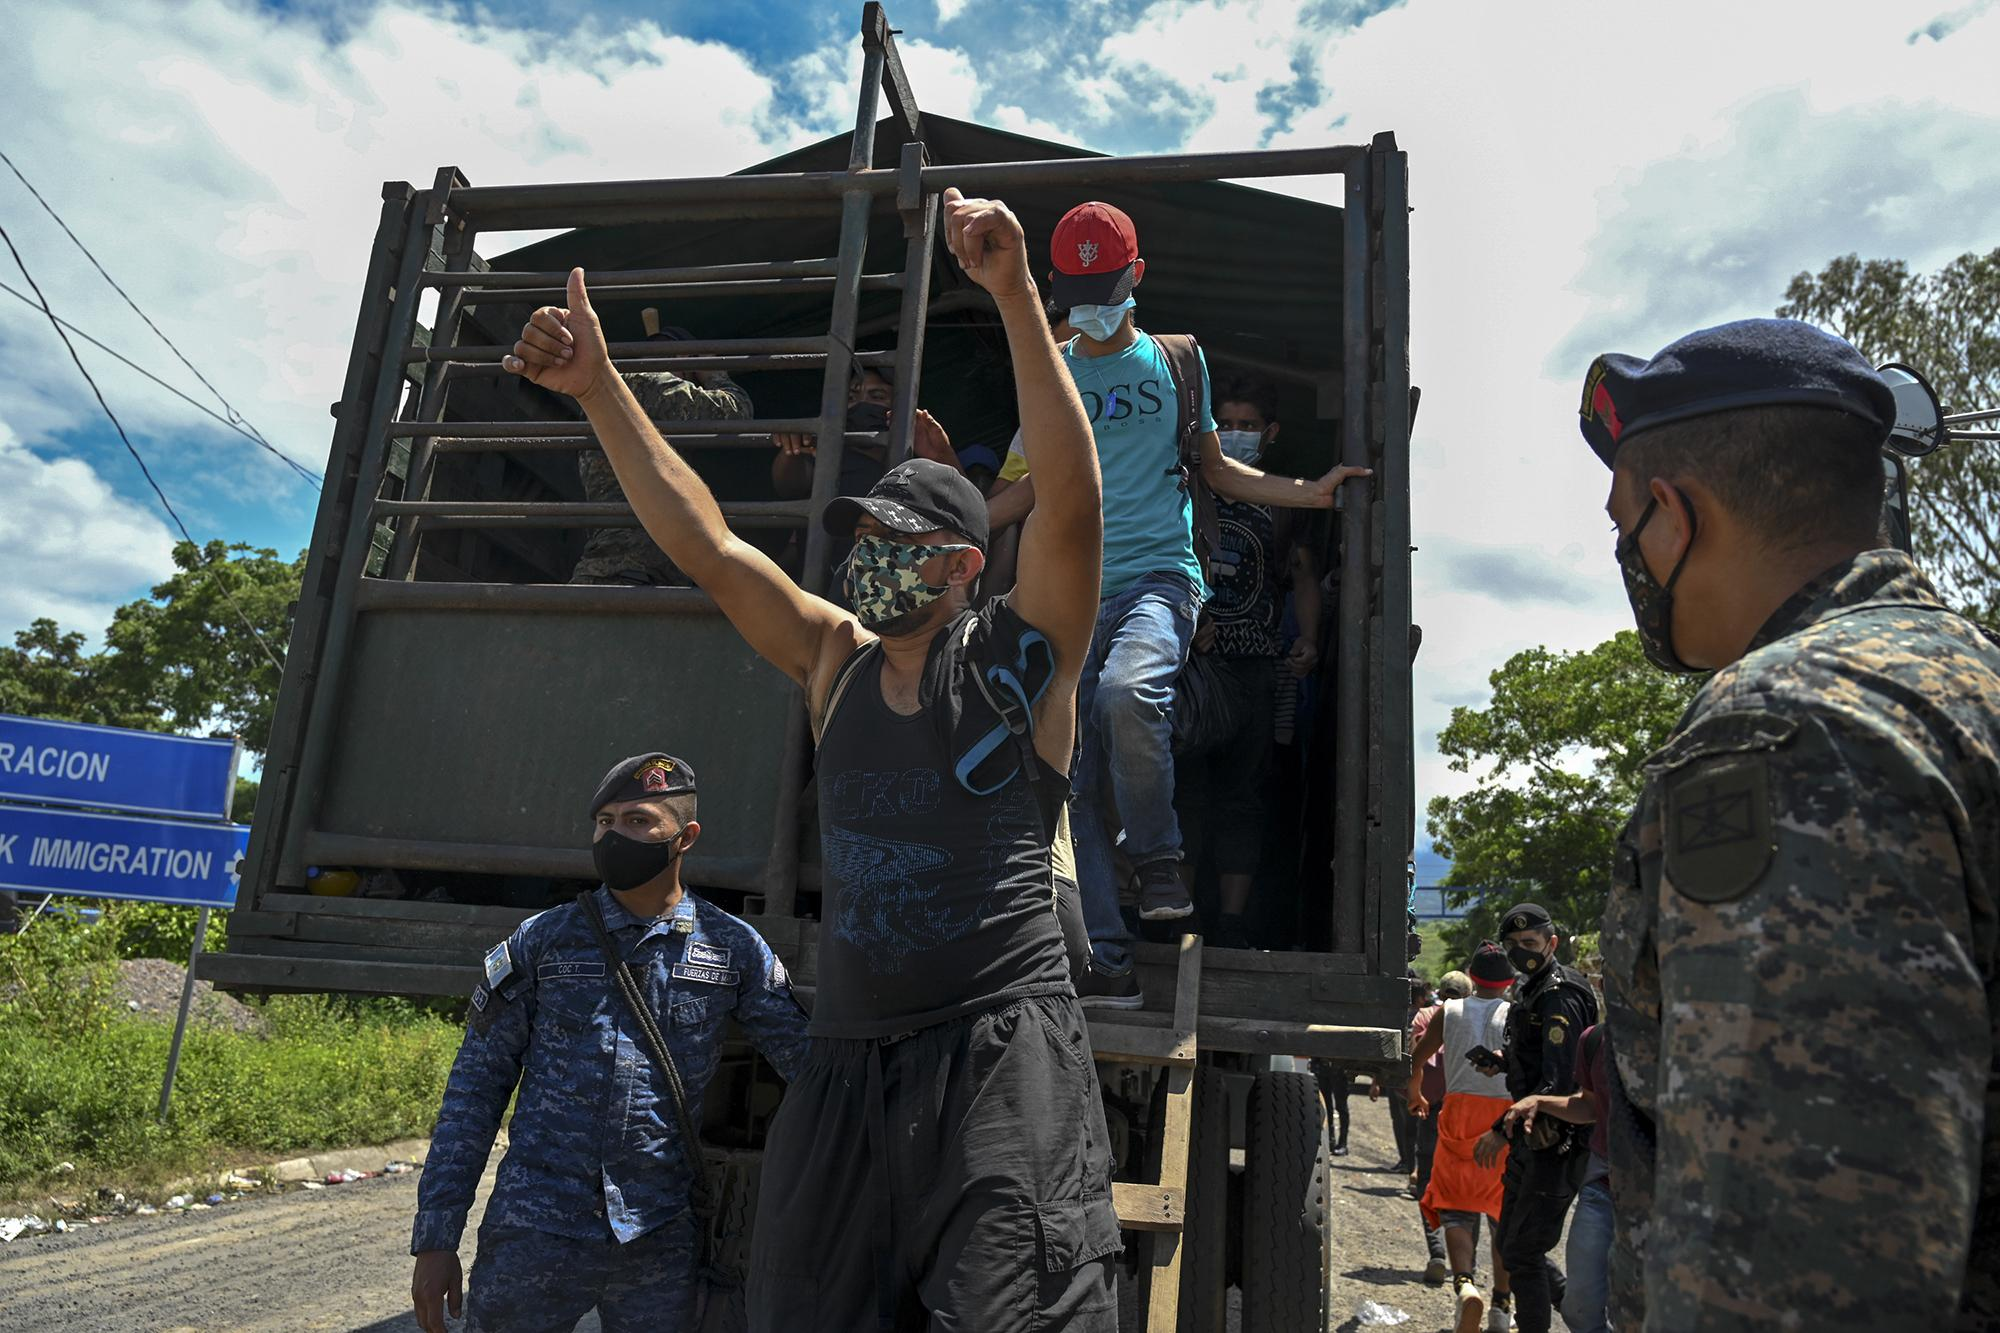 Honduran migrants who were heading in a caravan to the US, get off a Guatemalan army truck after voluntarily agreeing to return to Honduras, in Entre Rios, Guatemala, on October 3, 2020. - Over 2.000 Hondurans requested local authorities to return to their country, according to police data sent to journalists. Guatemalan President Alejandro Giammattei on Thursday had ordered the detention of thousands of Hondurans who entered the country as part of a US-bound migrant caravan. (Photo by Johan ORDONEZ / AFP)